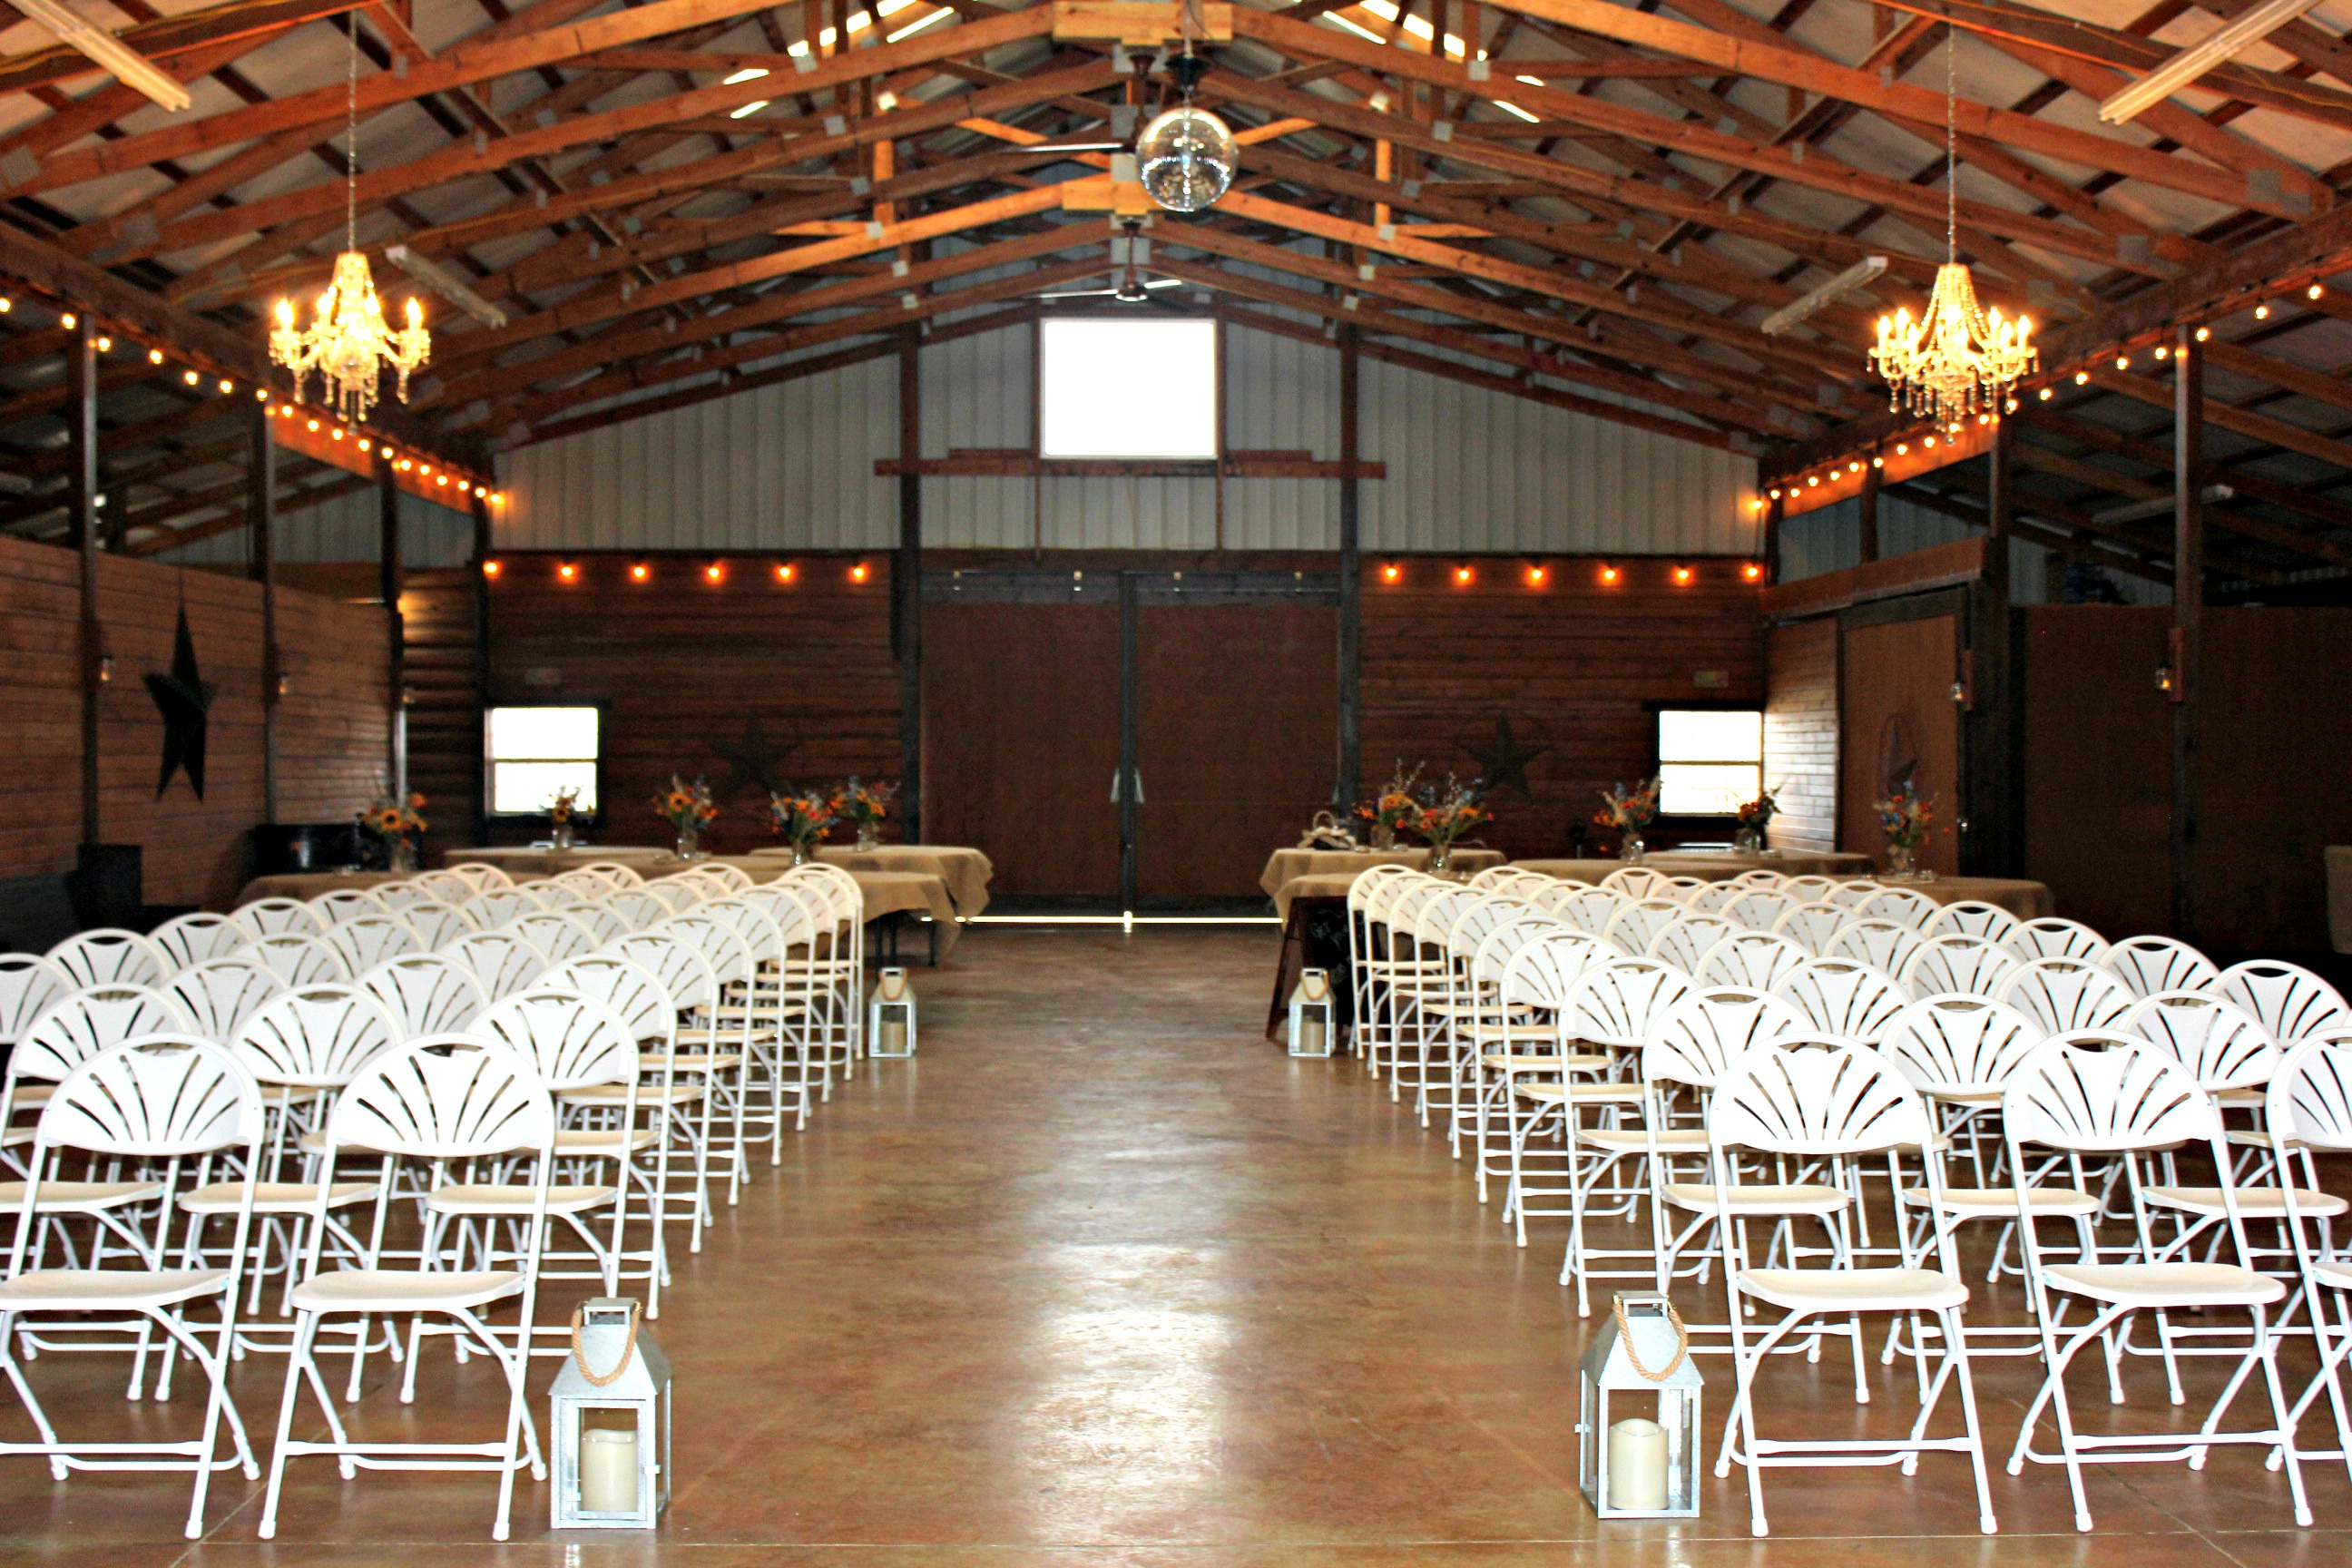 Tulsa wedding venues wedding venues with indoor and outdoor options tulsa wedding venues 8330 junglespirit Choice Image